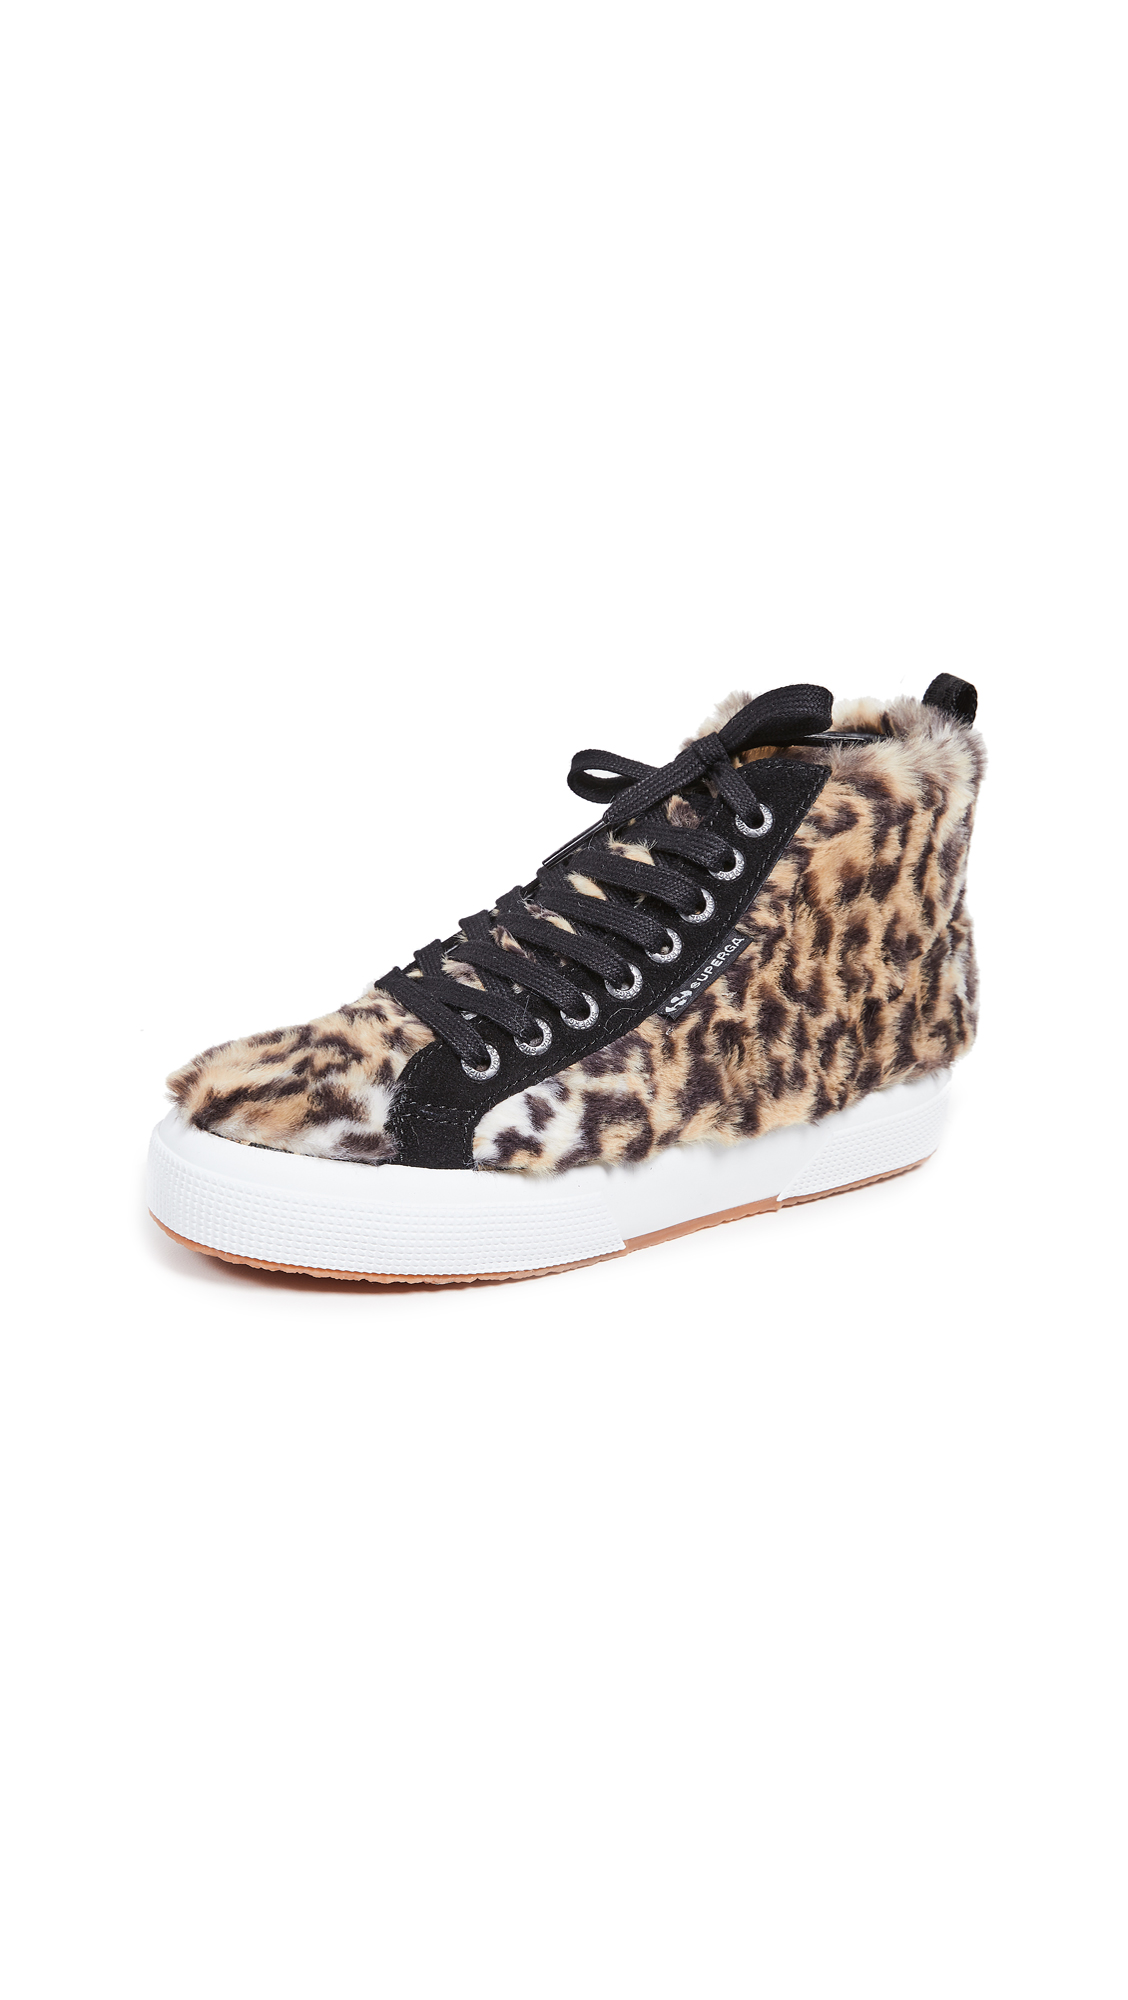 Superga x Jocelyn 2795 High Top Sneakers - Leopard